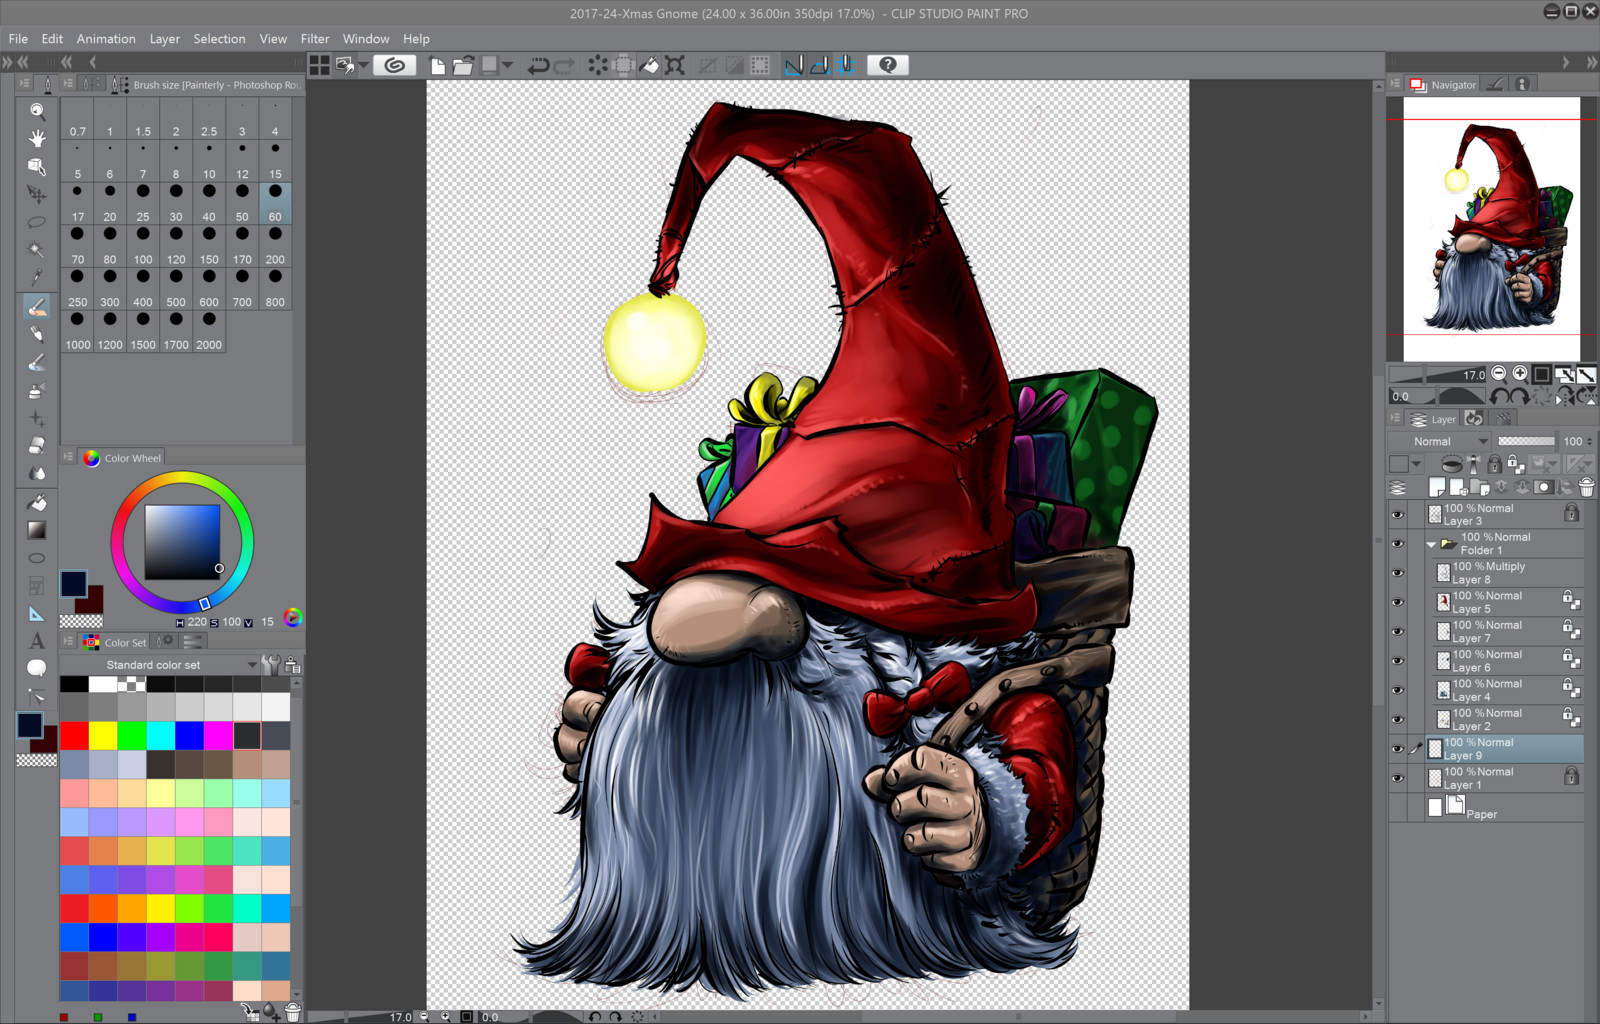 06- Finish painting the main character and now onto the background